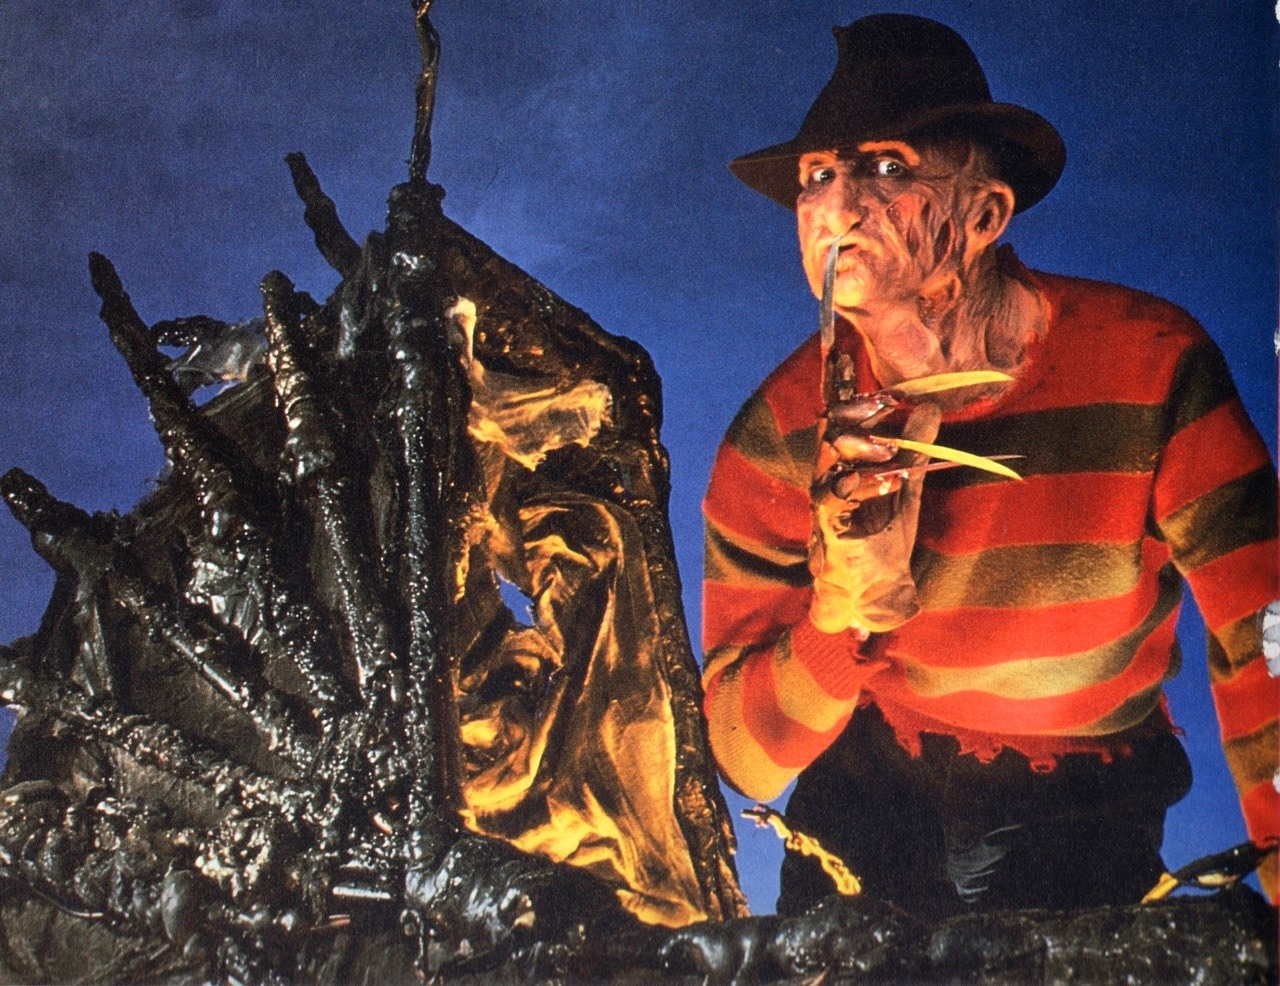 Freddy Krueger (Robert Englund) in A Nightmare on Elm Street: The Dream Child (1989)